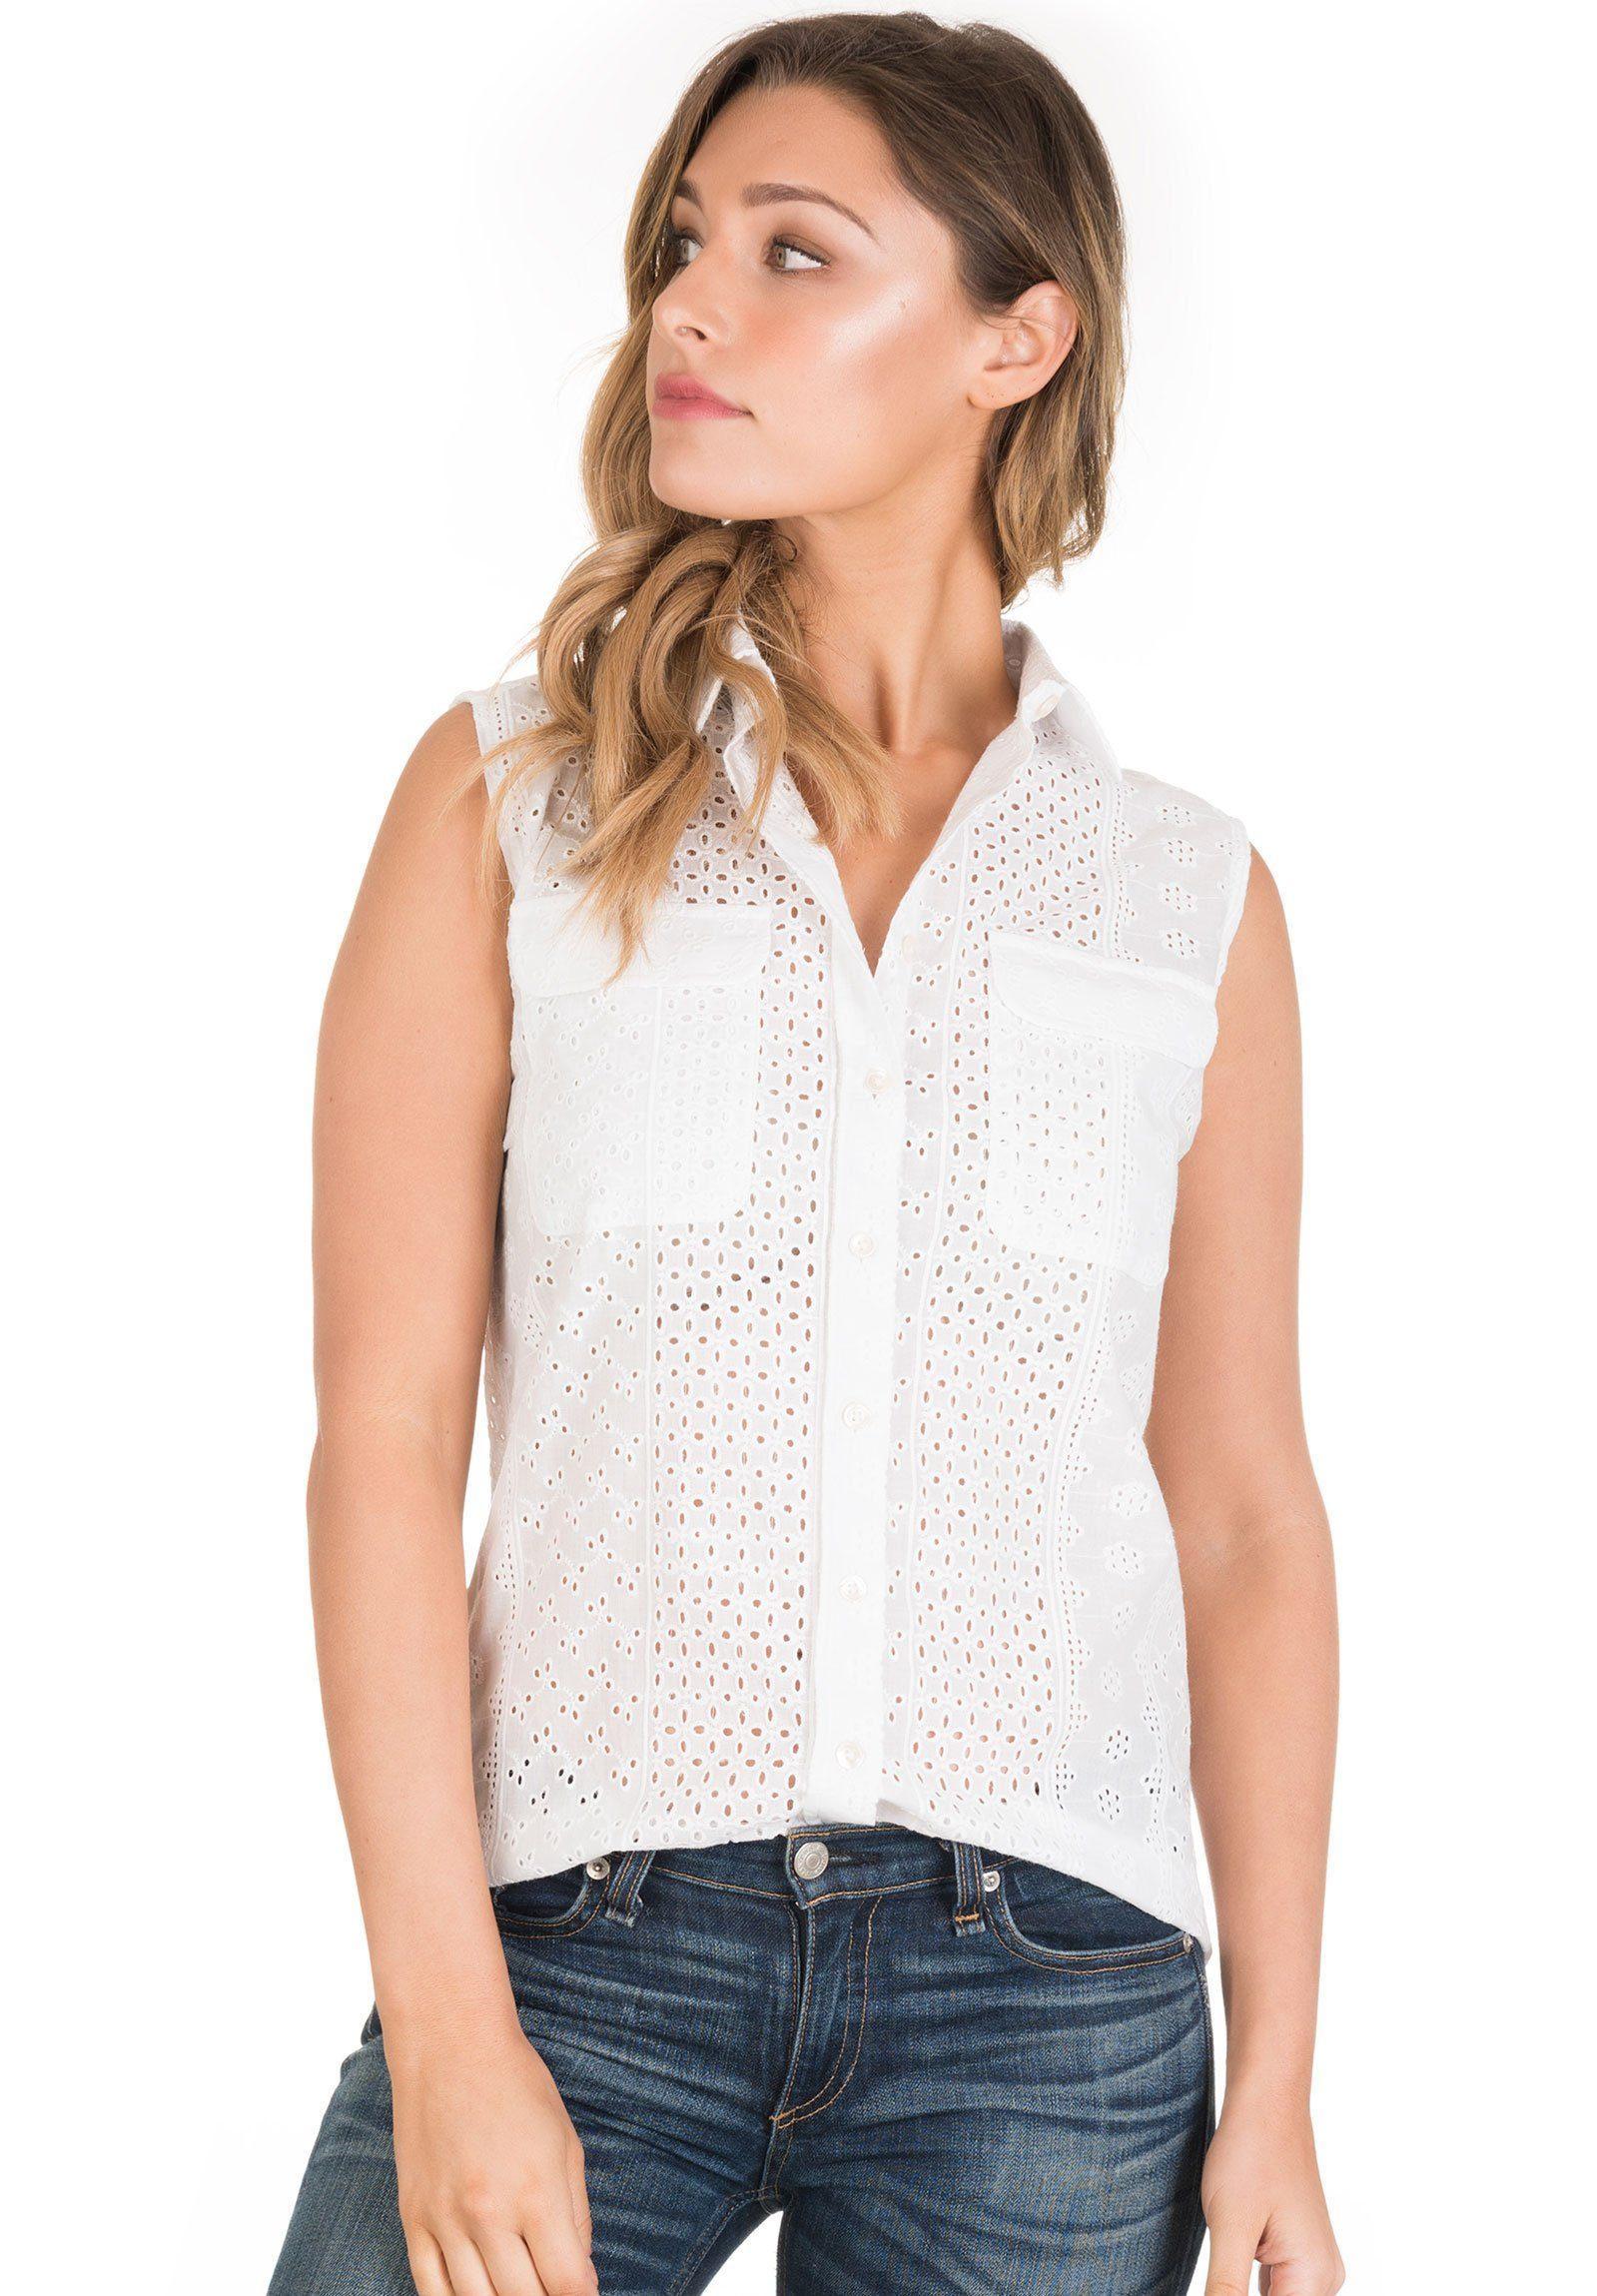 Aura Lace White, Sleeveless Broderie Anglaise Shirt with Pockets